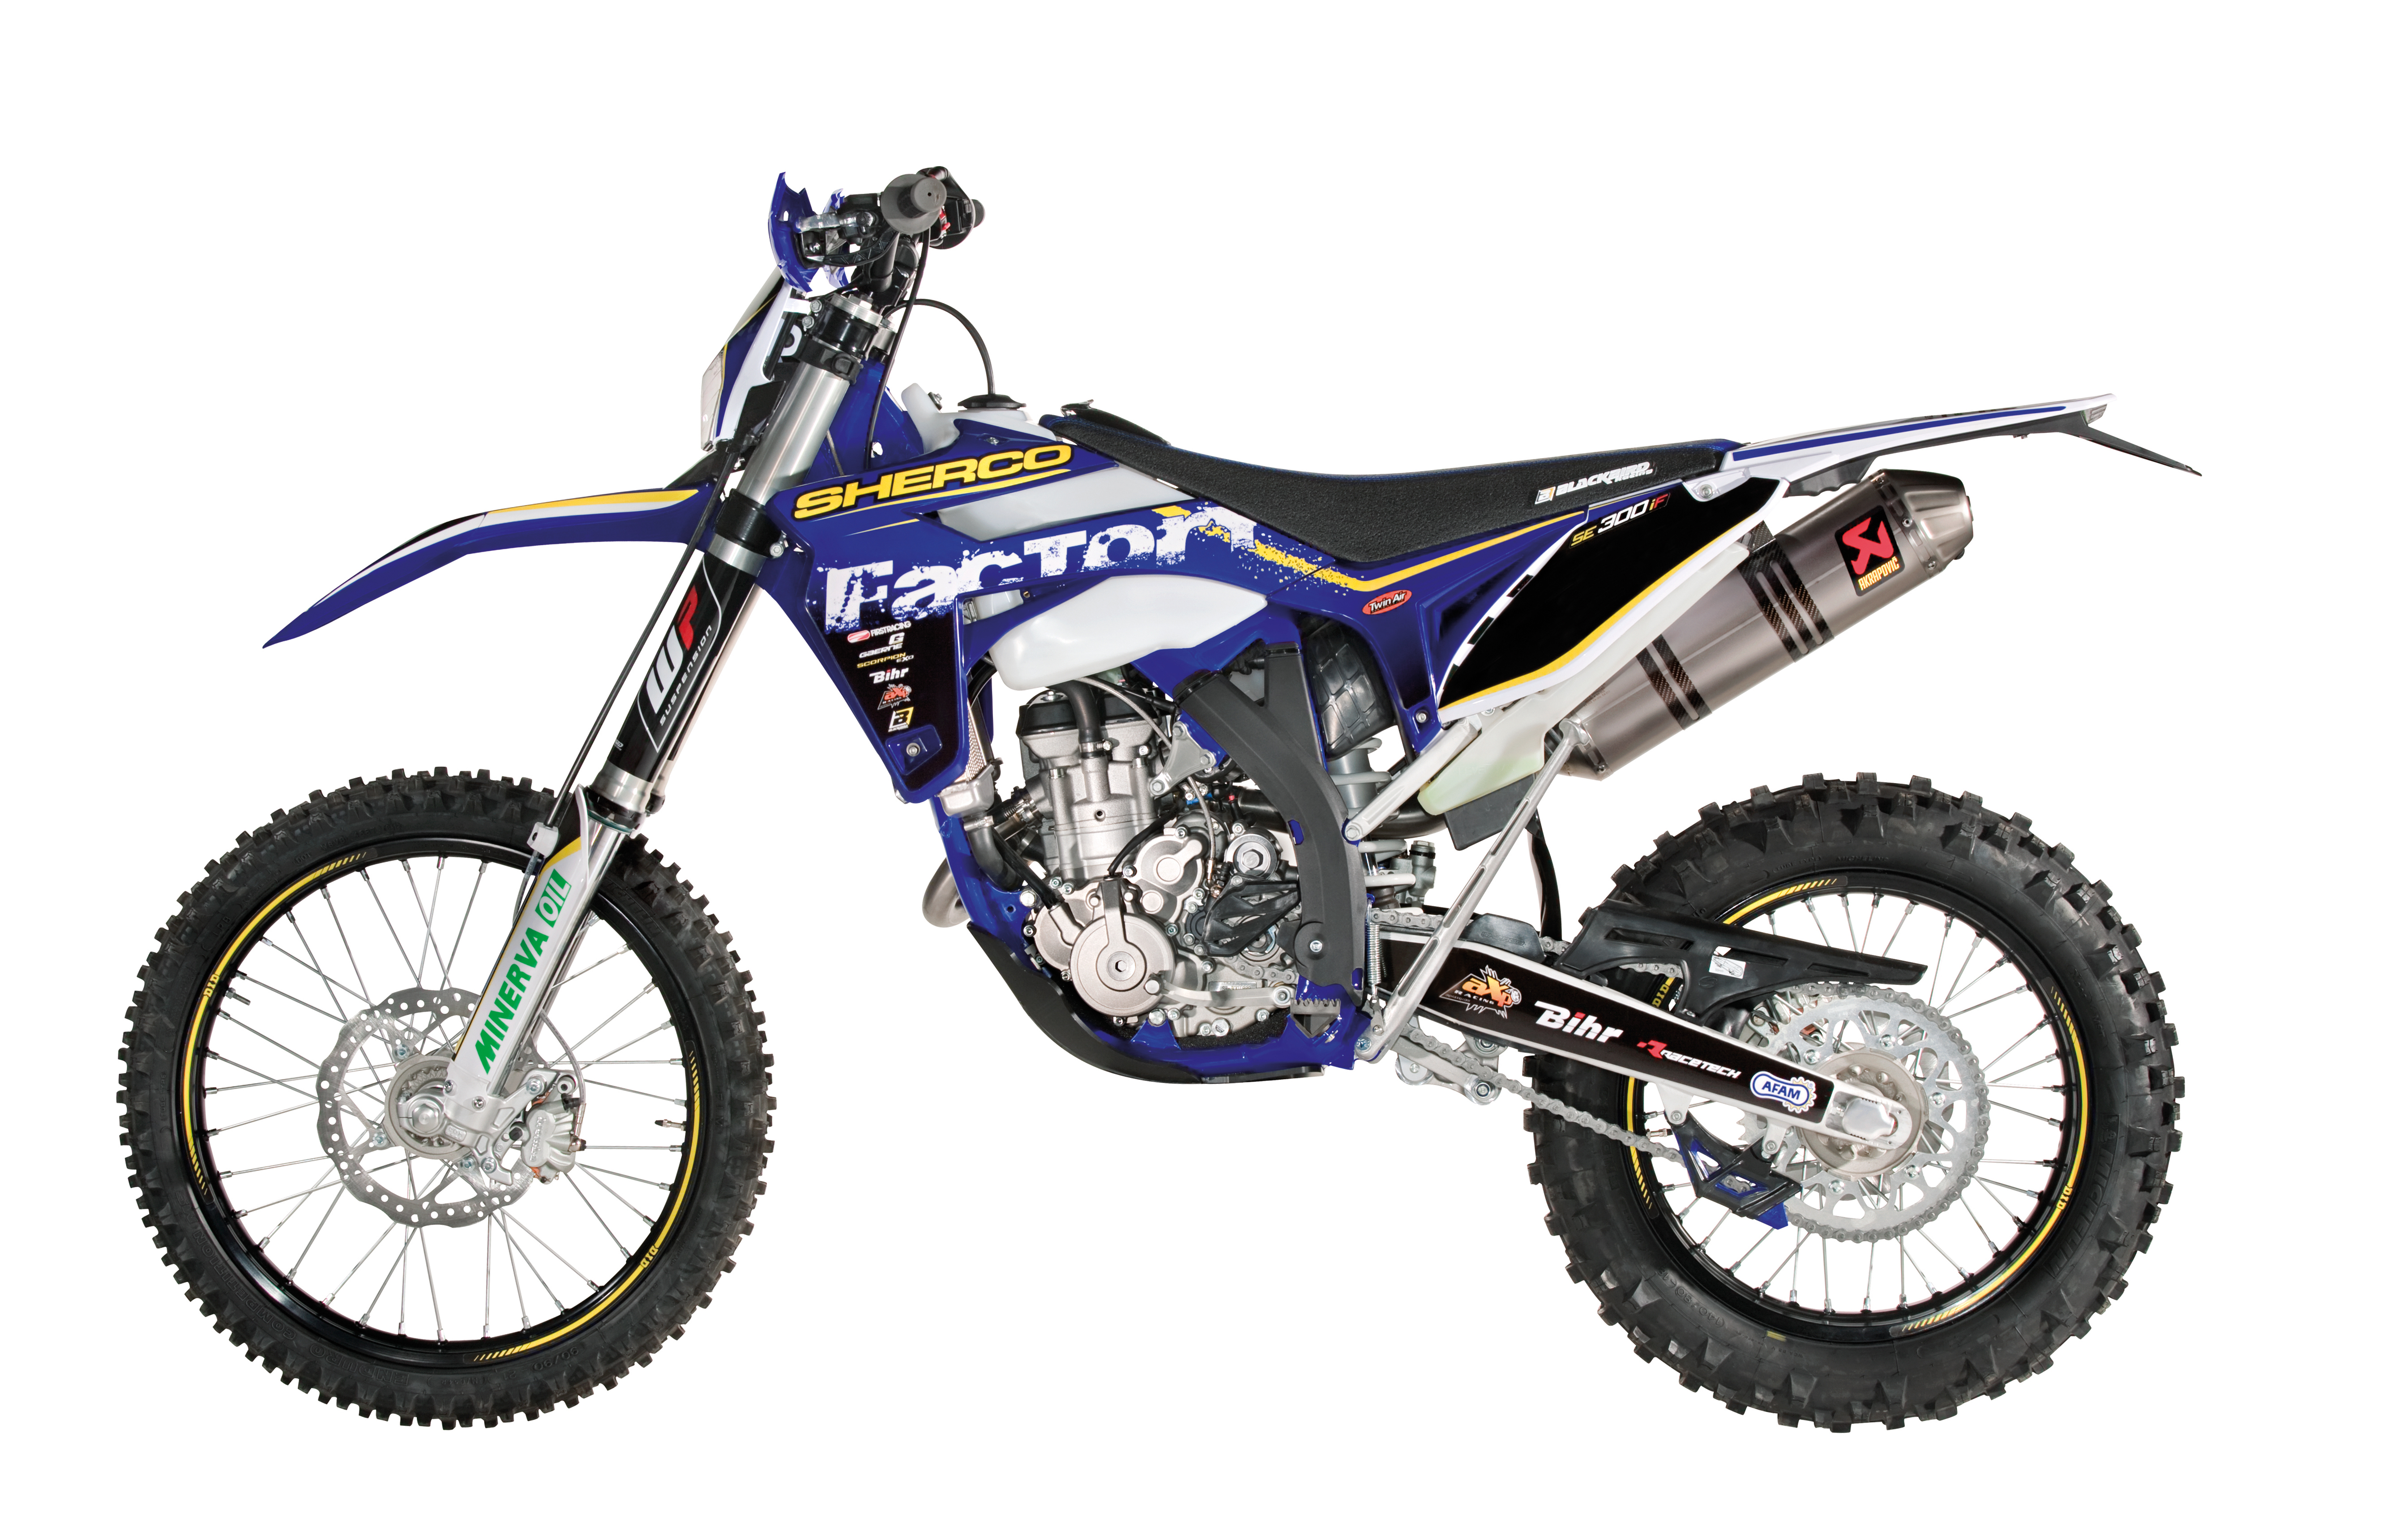 Sherco 125cc Enduro Shark Replica 2007 images #124666